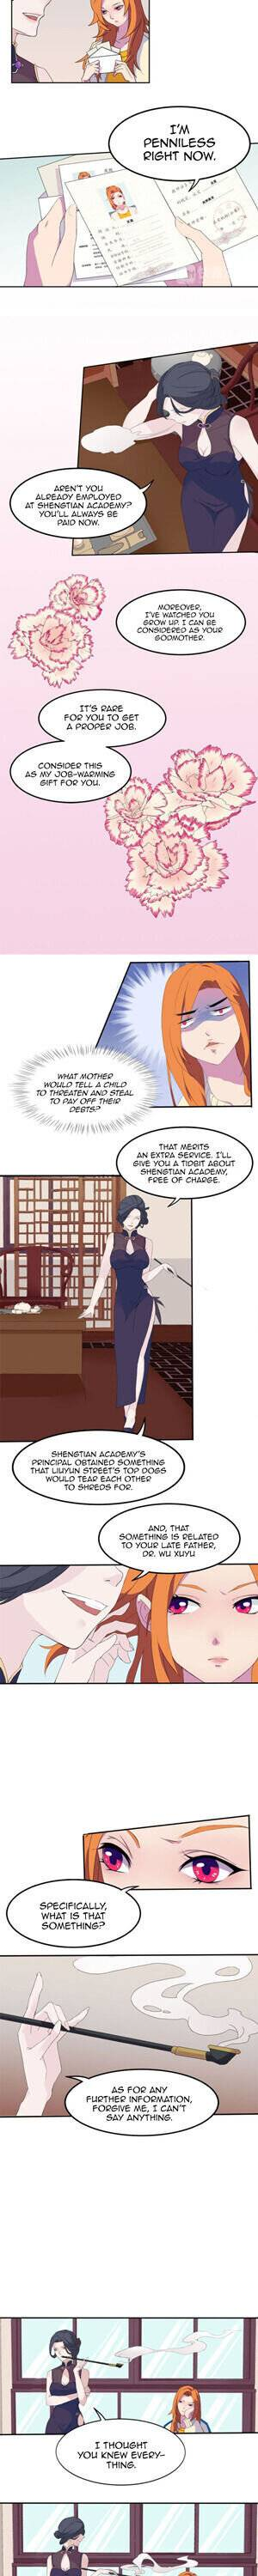 The Female Teacher Who Fights Back - chapter 8 - #2